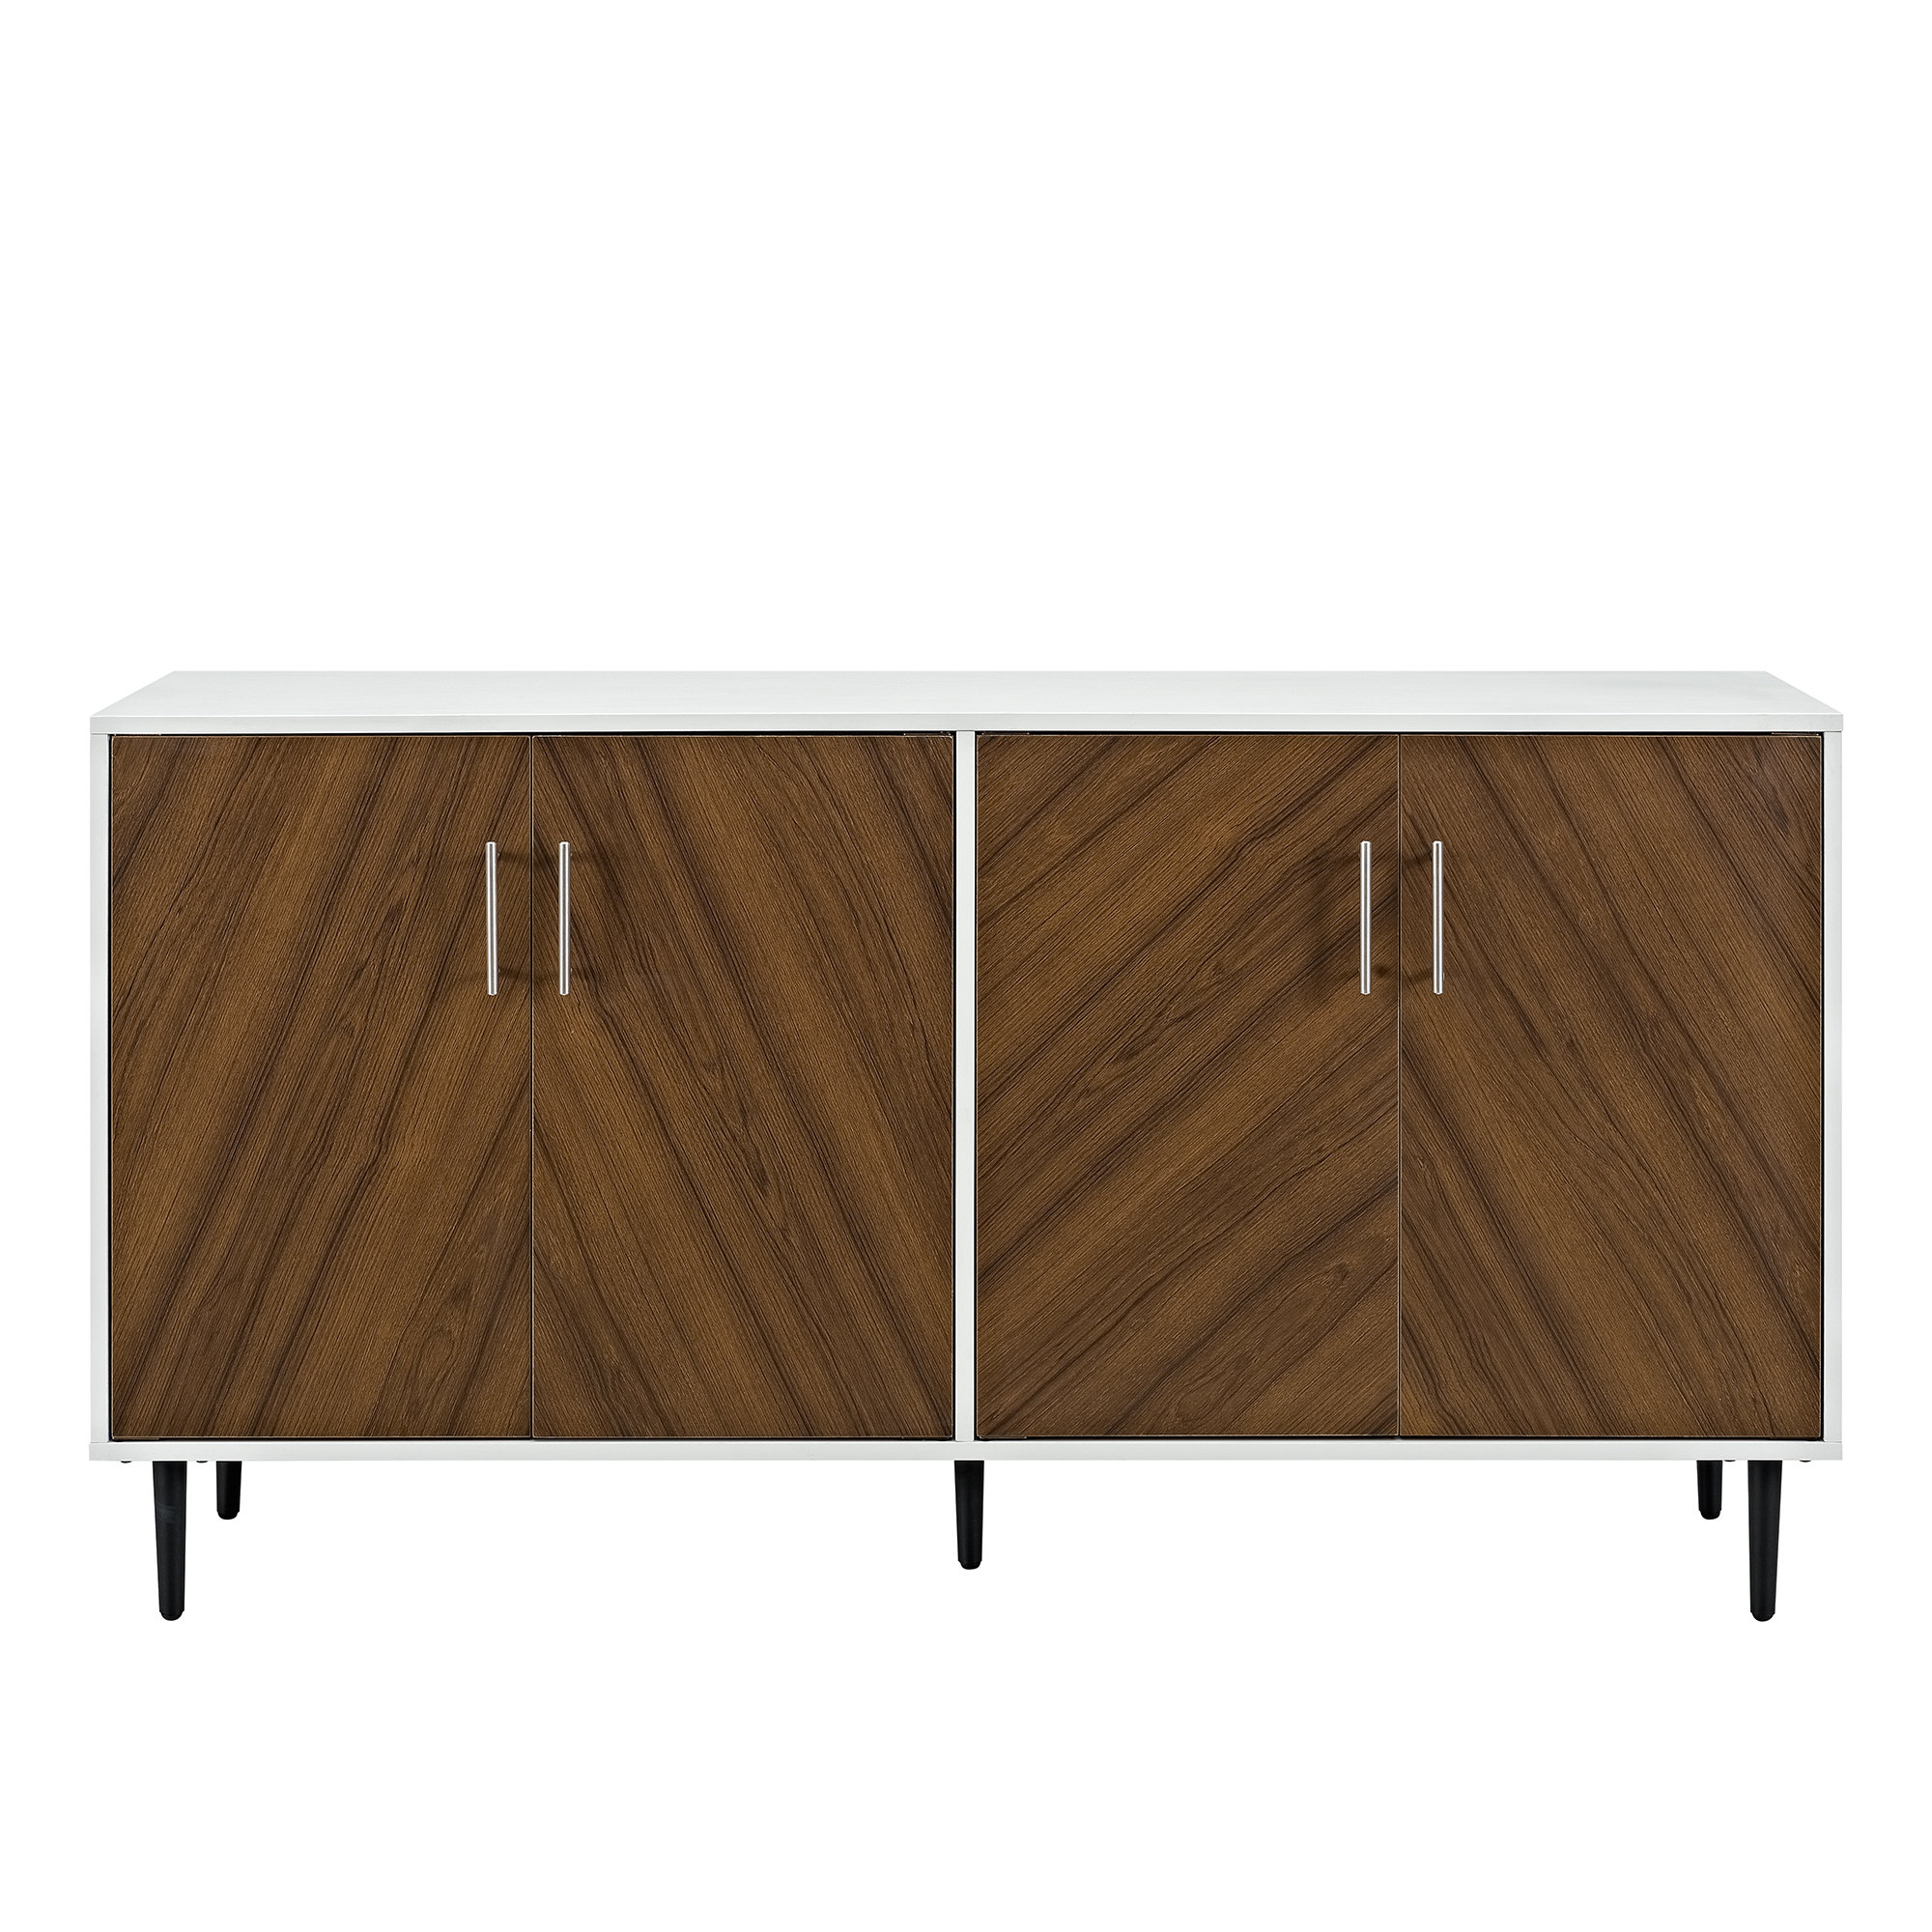 Inspiration about Modern & Contemporary Modern White Sideboards | Allmodern Within Current Emiliano Sideboards (#11 of 20)